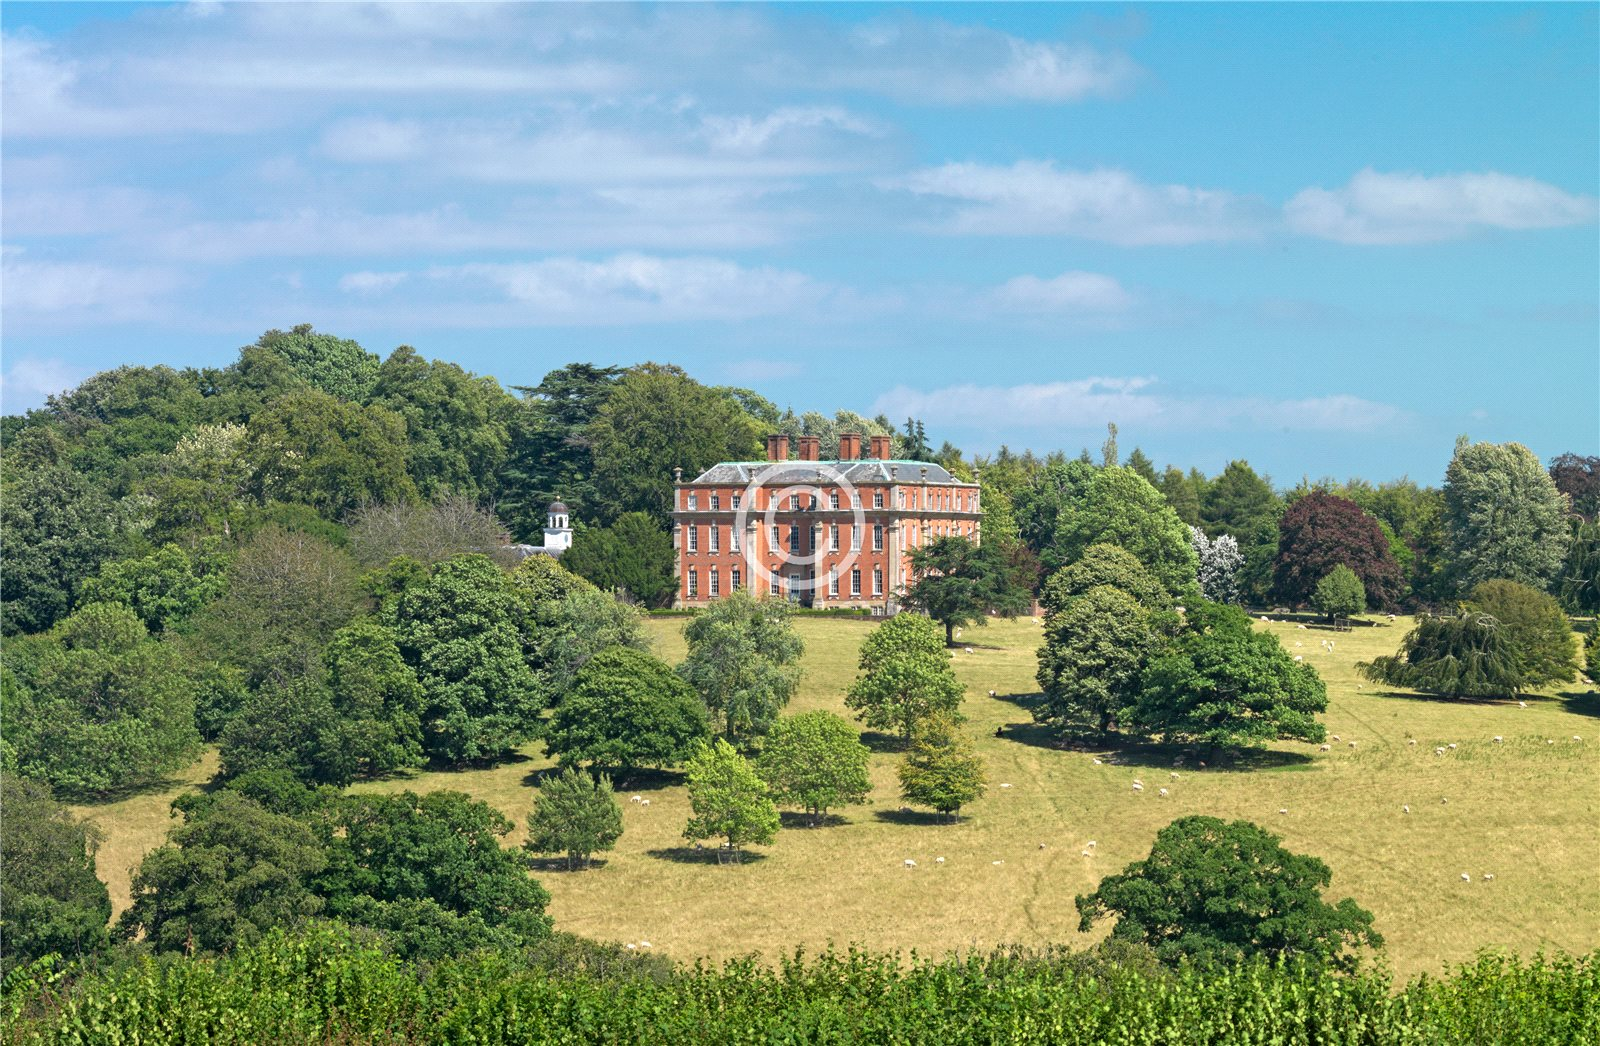 Apartments / Residences for Sale at Cleobury Mortimer, Kidderminster, Worcestershire, DY14 Kidderminster, England